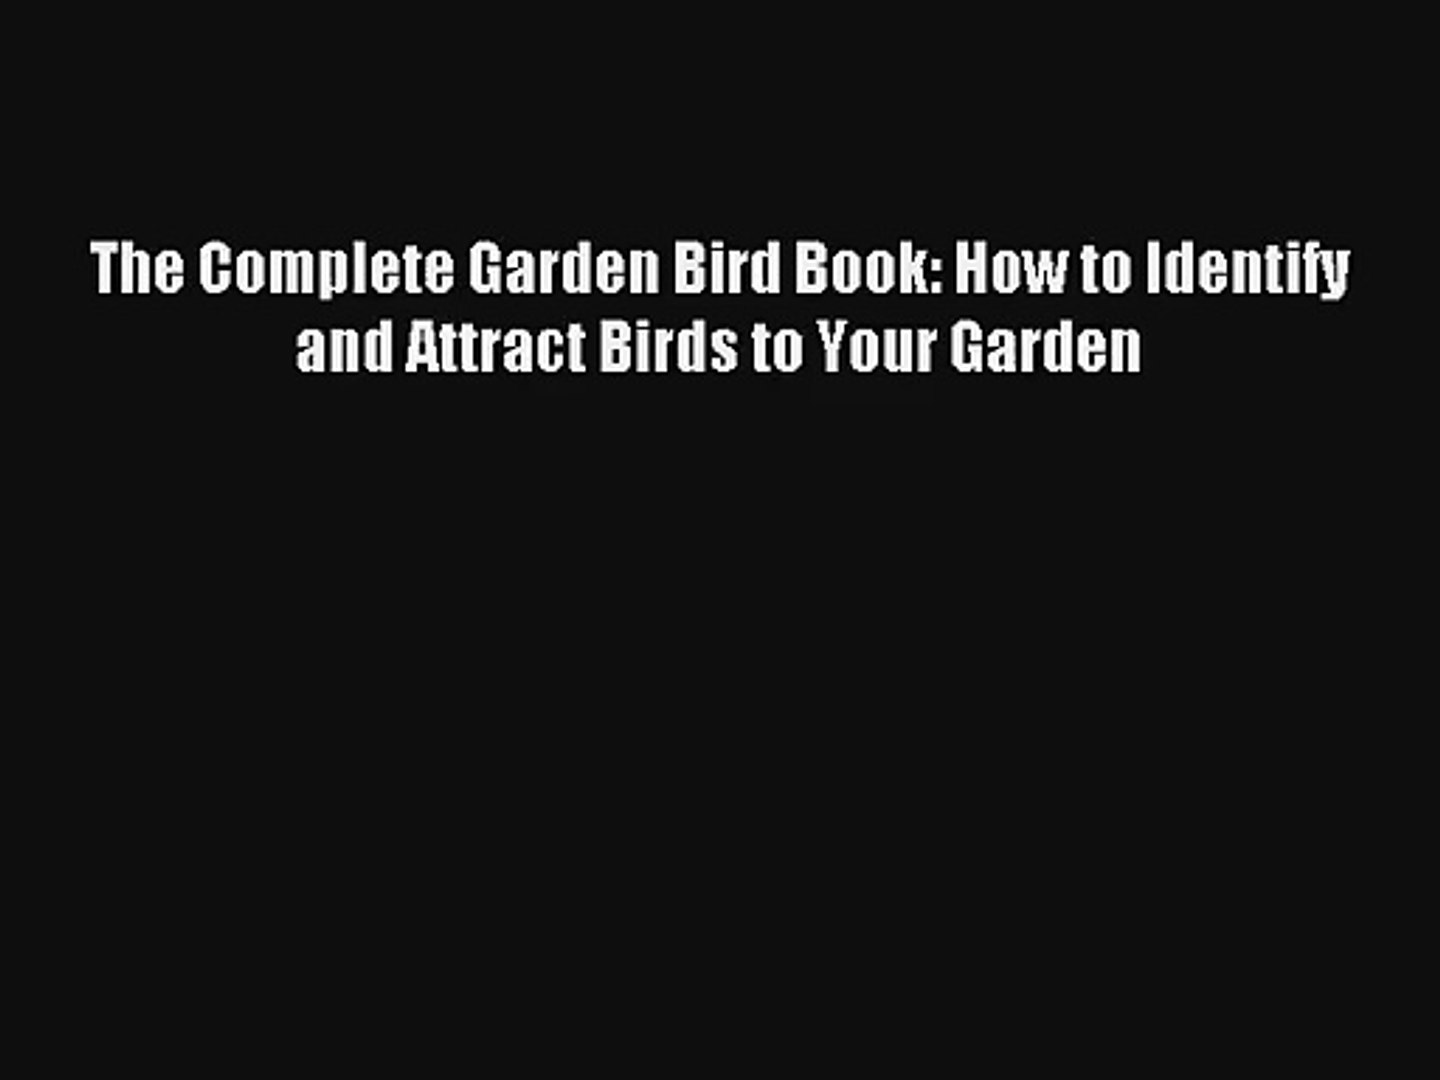 The Complete Garden Bird Book: How to Identify and Attract Birds to Your Garden [Read] Full